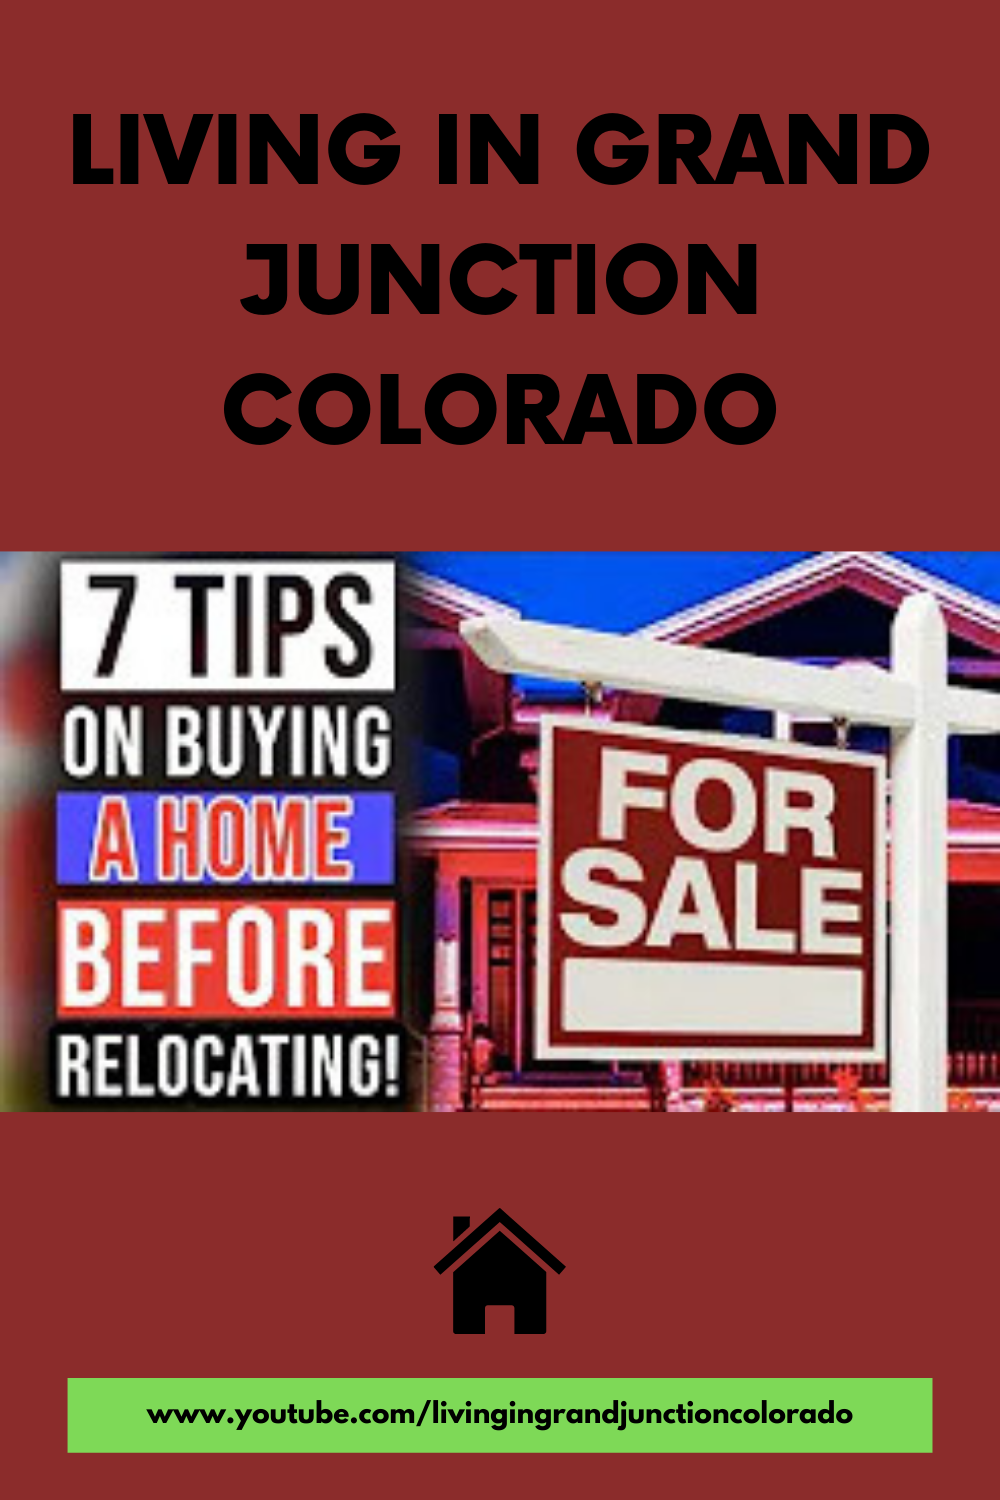 7 Tips Before Relocating To Grand Junction Colorado